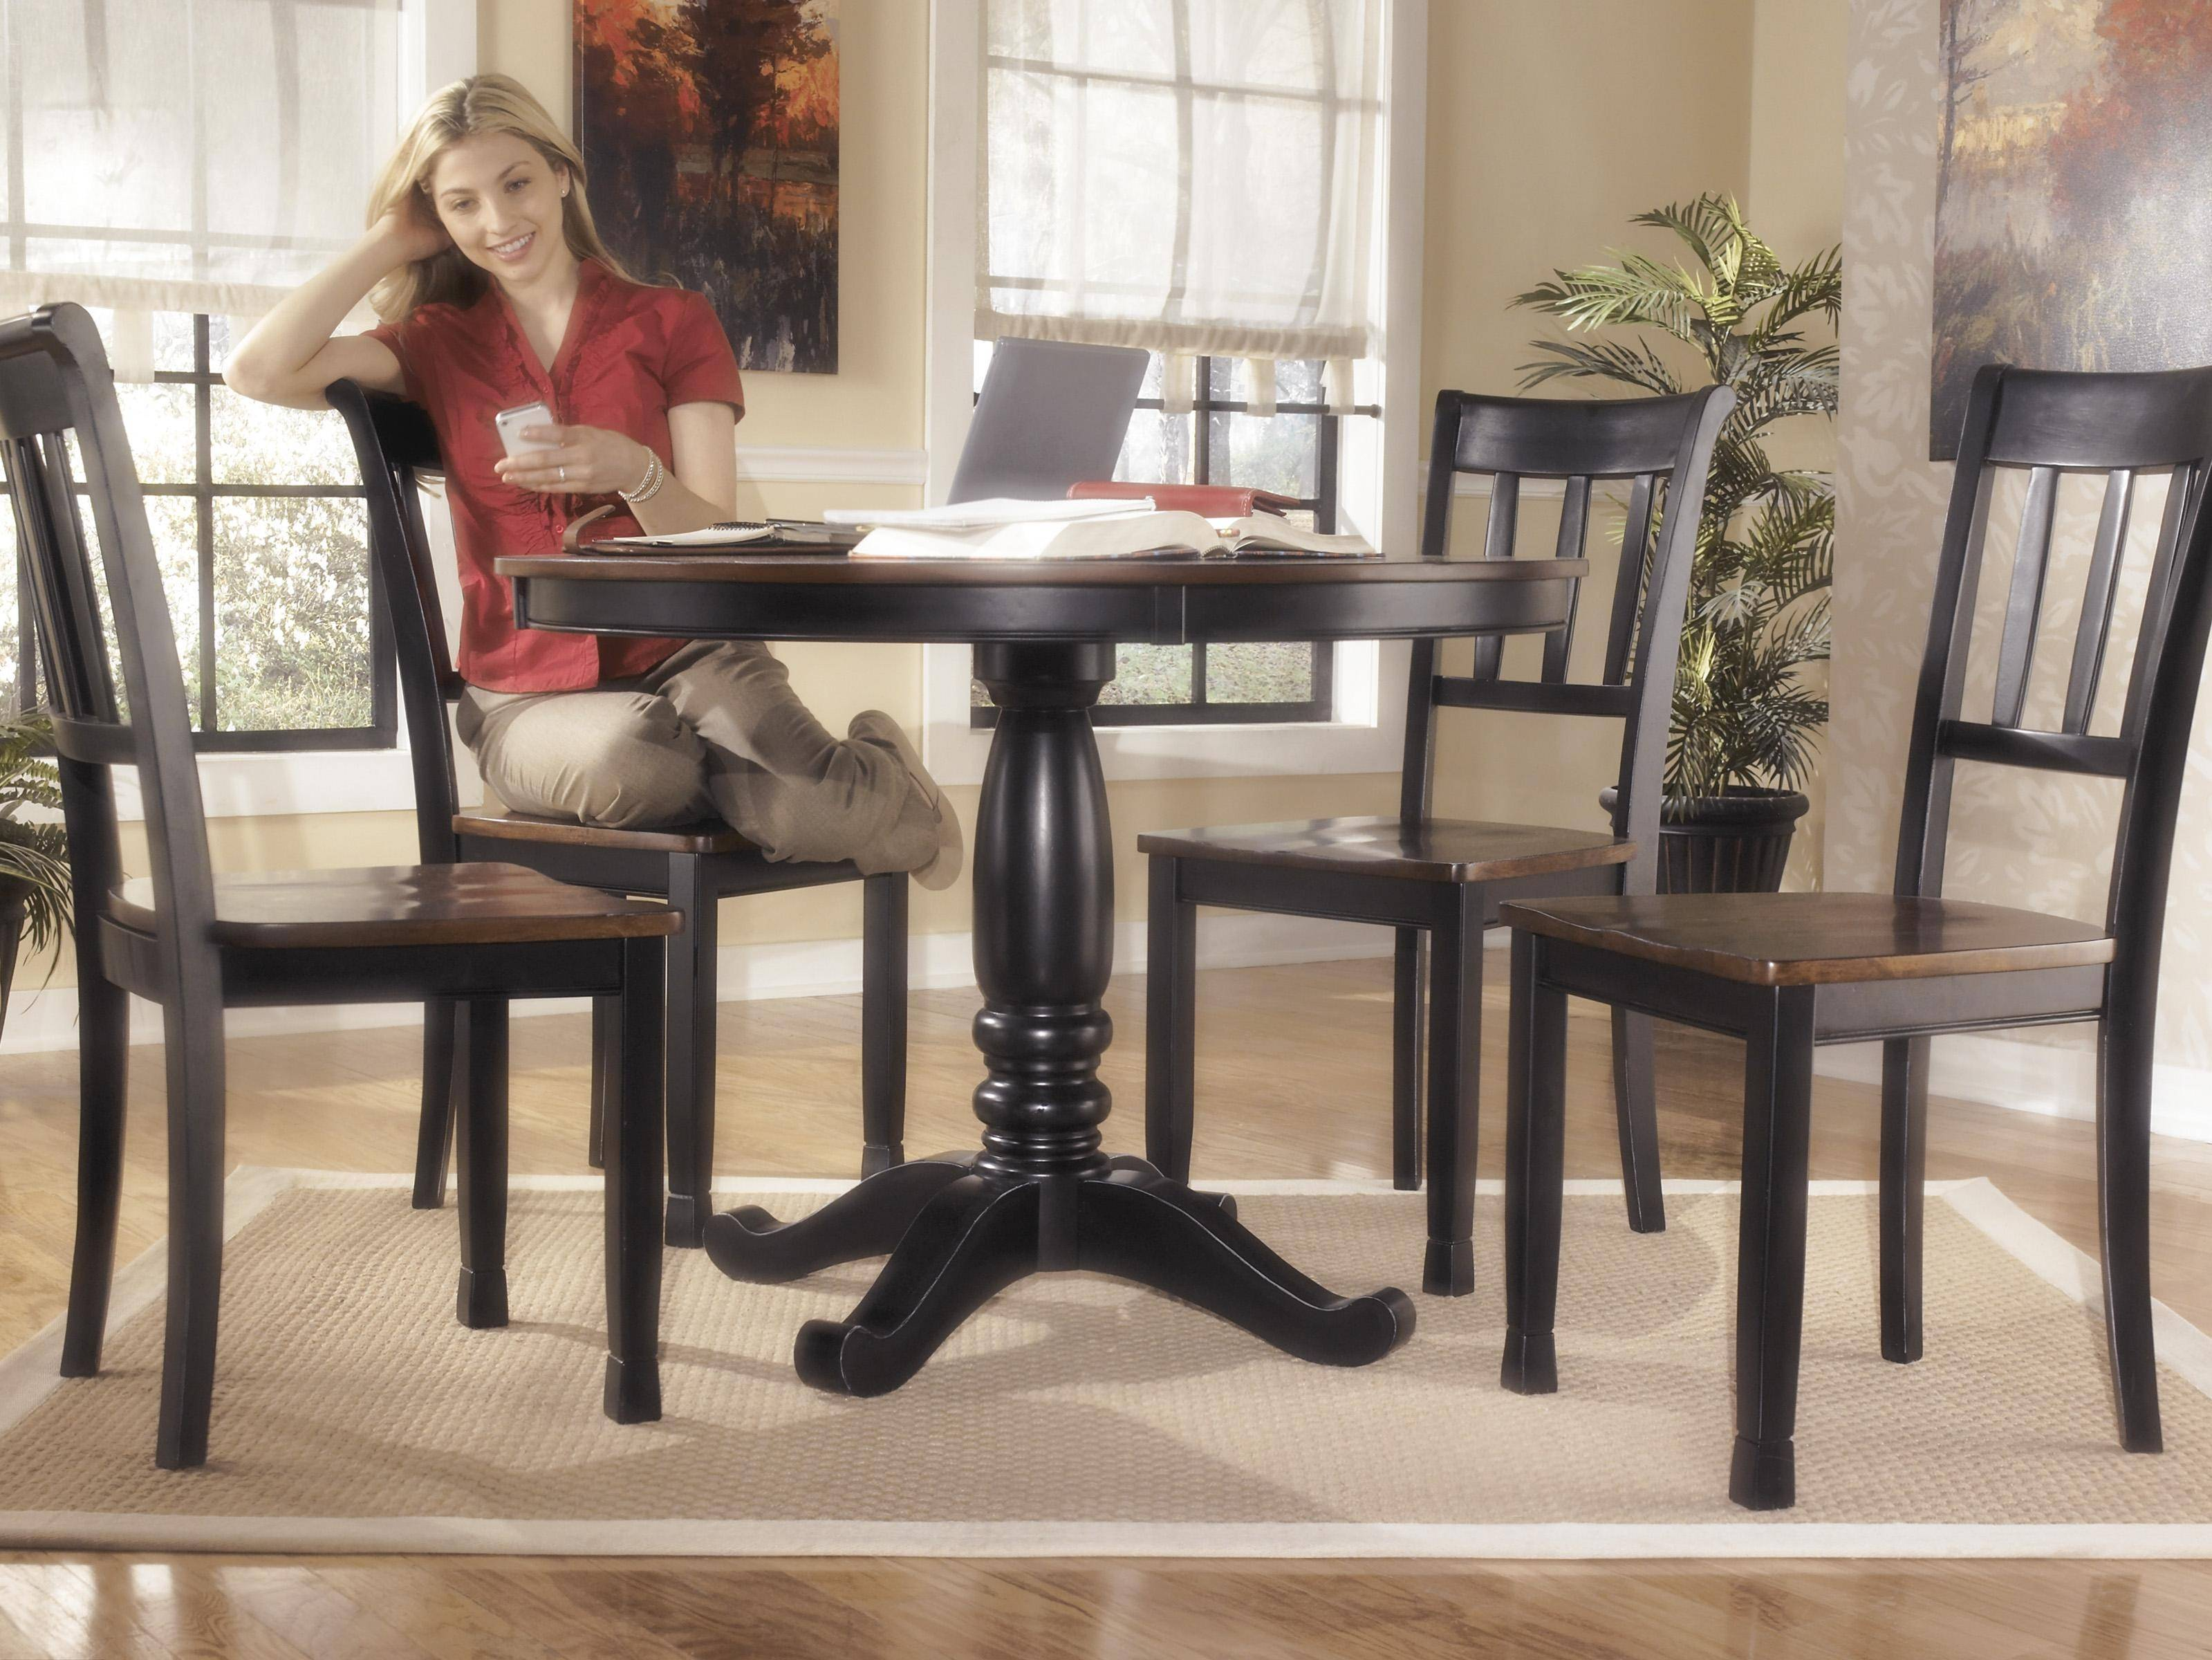 Ashley Owingsville D580 Dining Room Set 5pcs In Black Brown Round Table D580 15tb 02 4